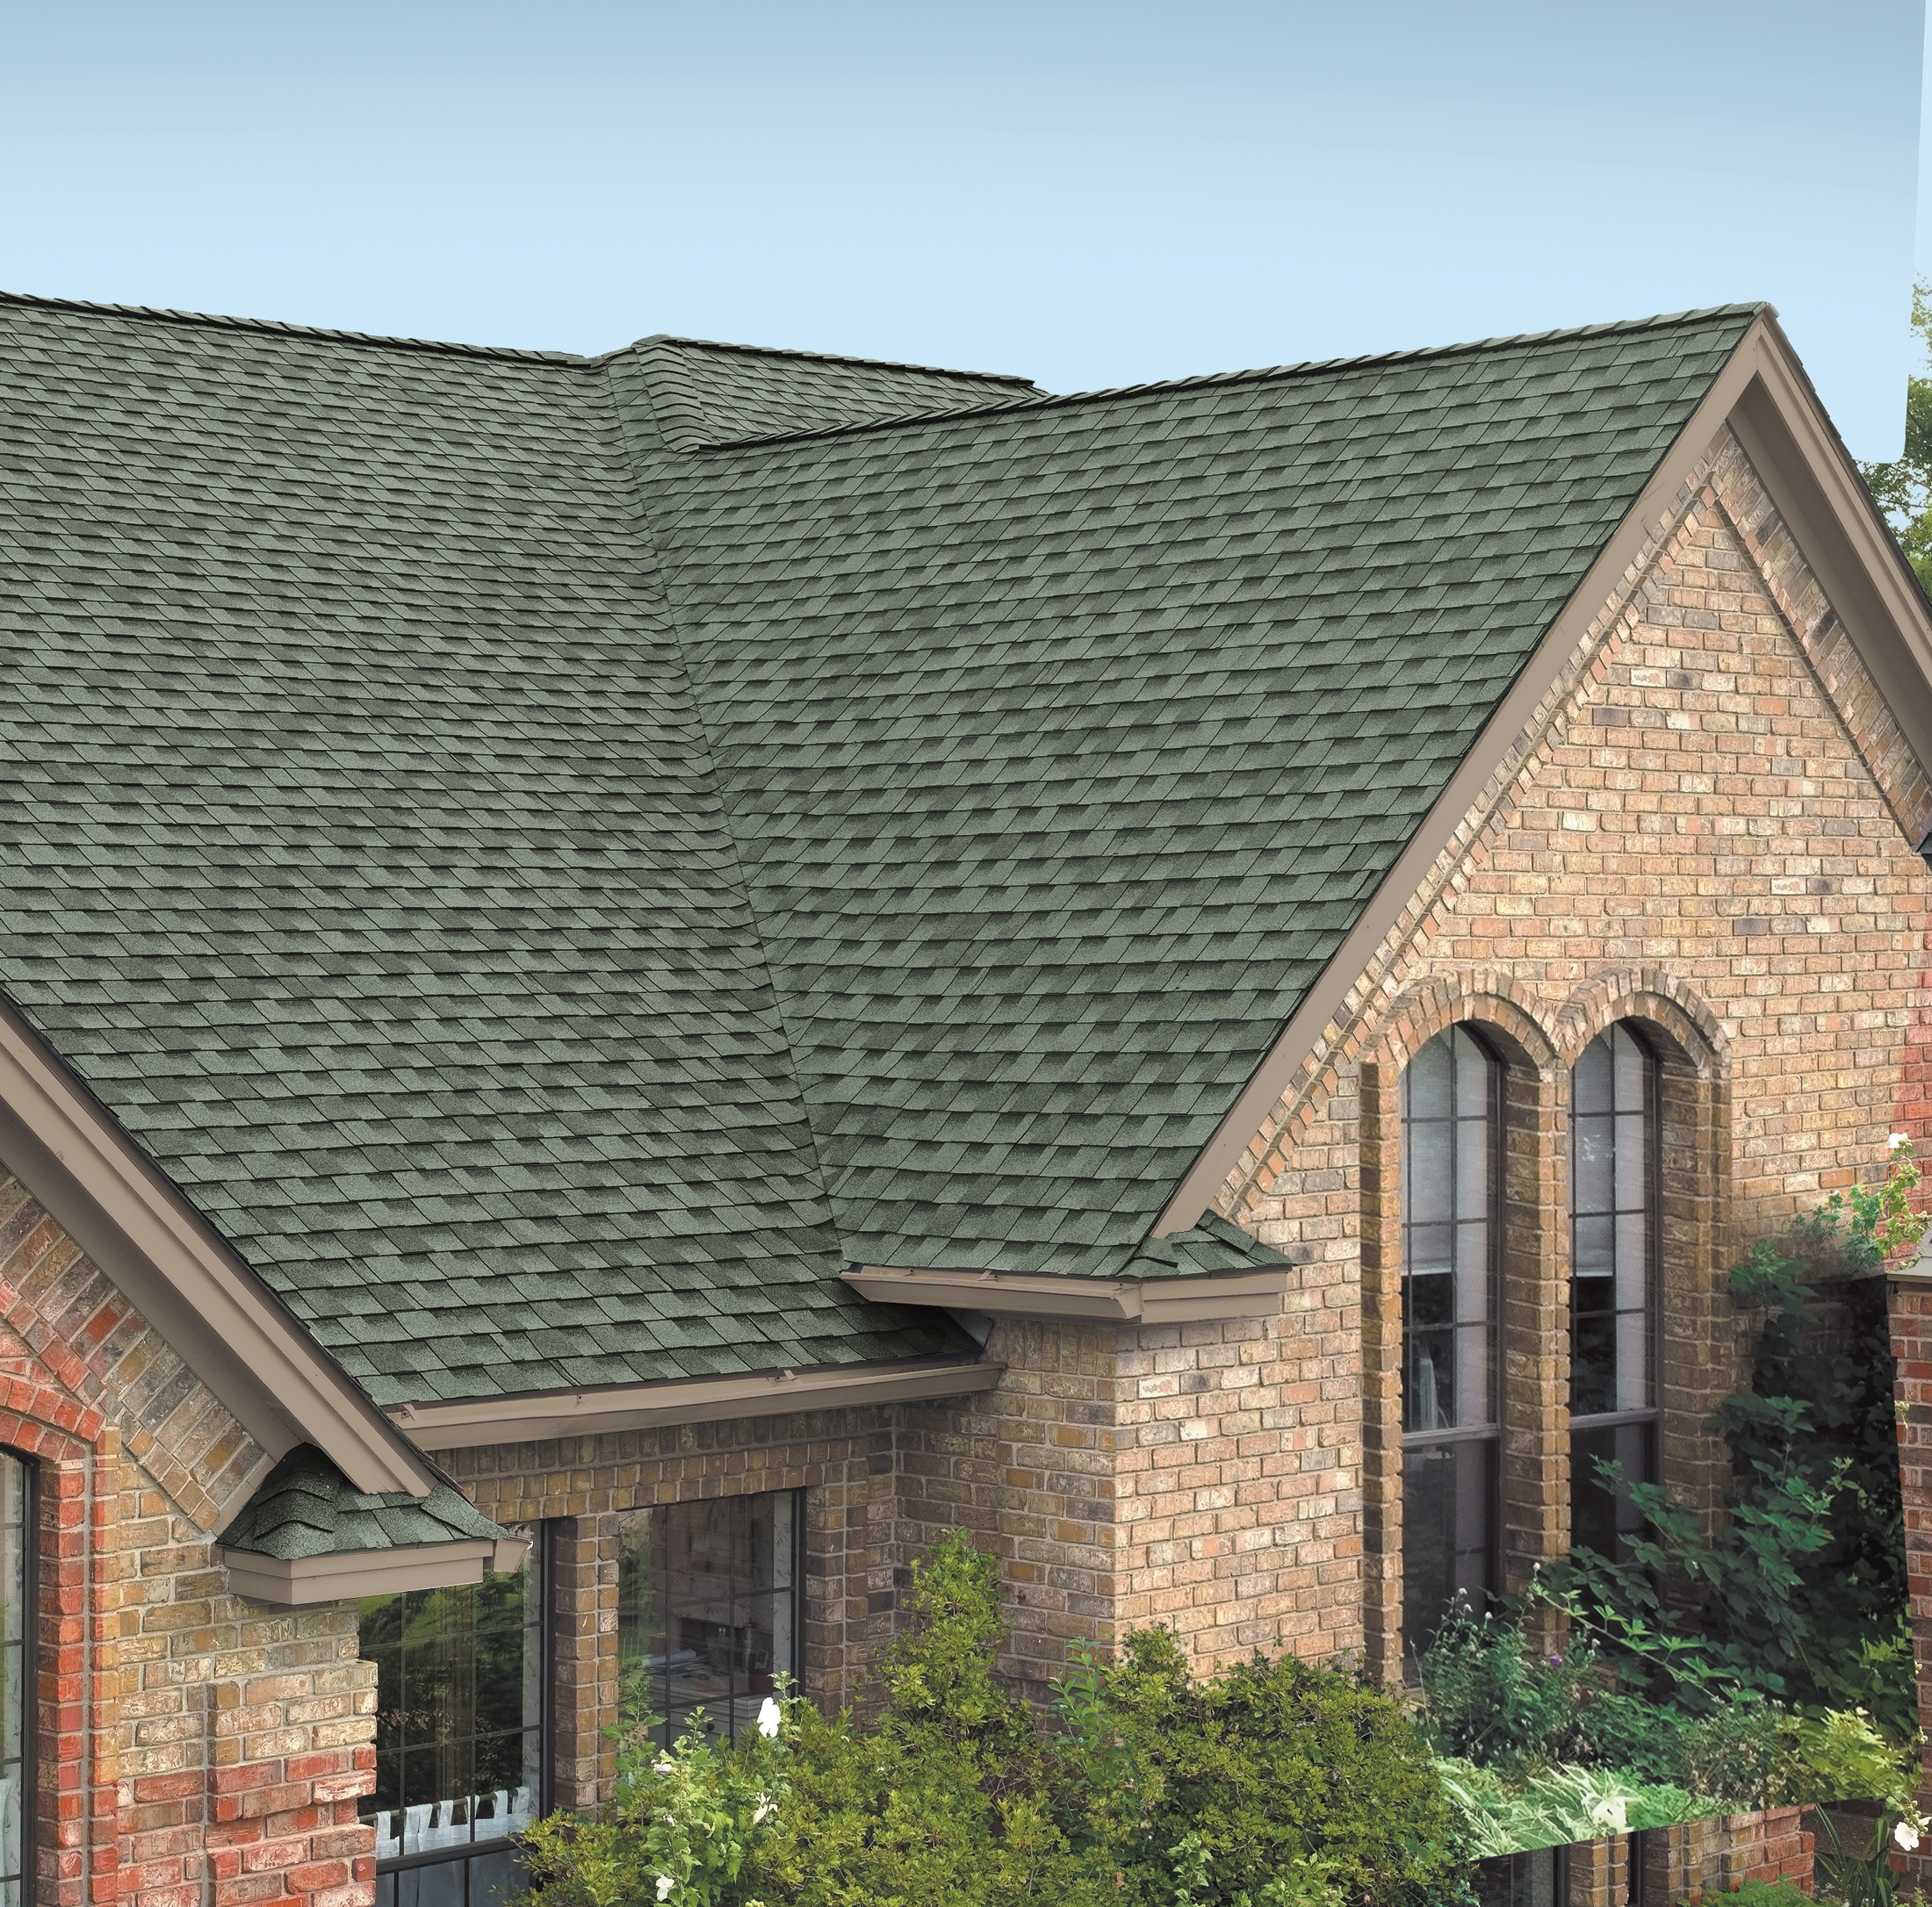 charming gray gaf timberline hd roofing matched with brick siding with glss windows for home exterior design ideas